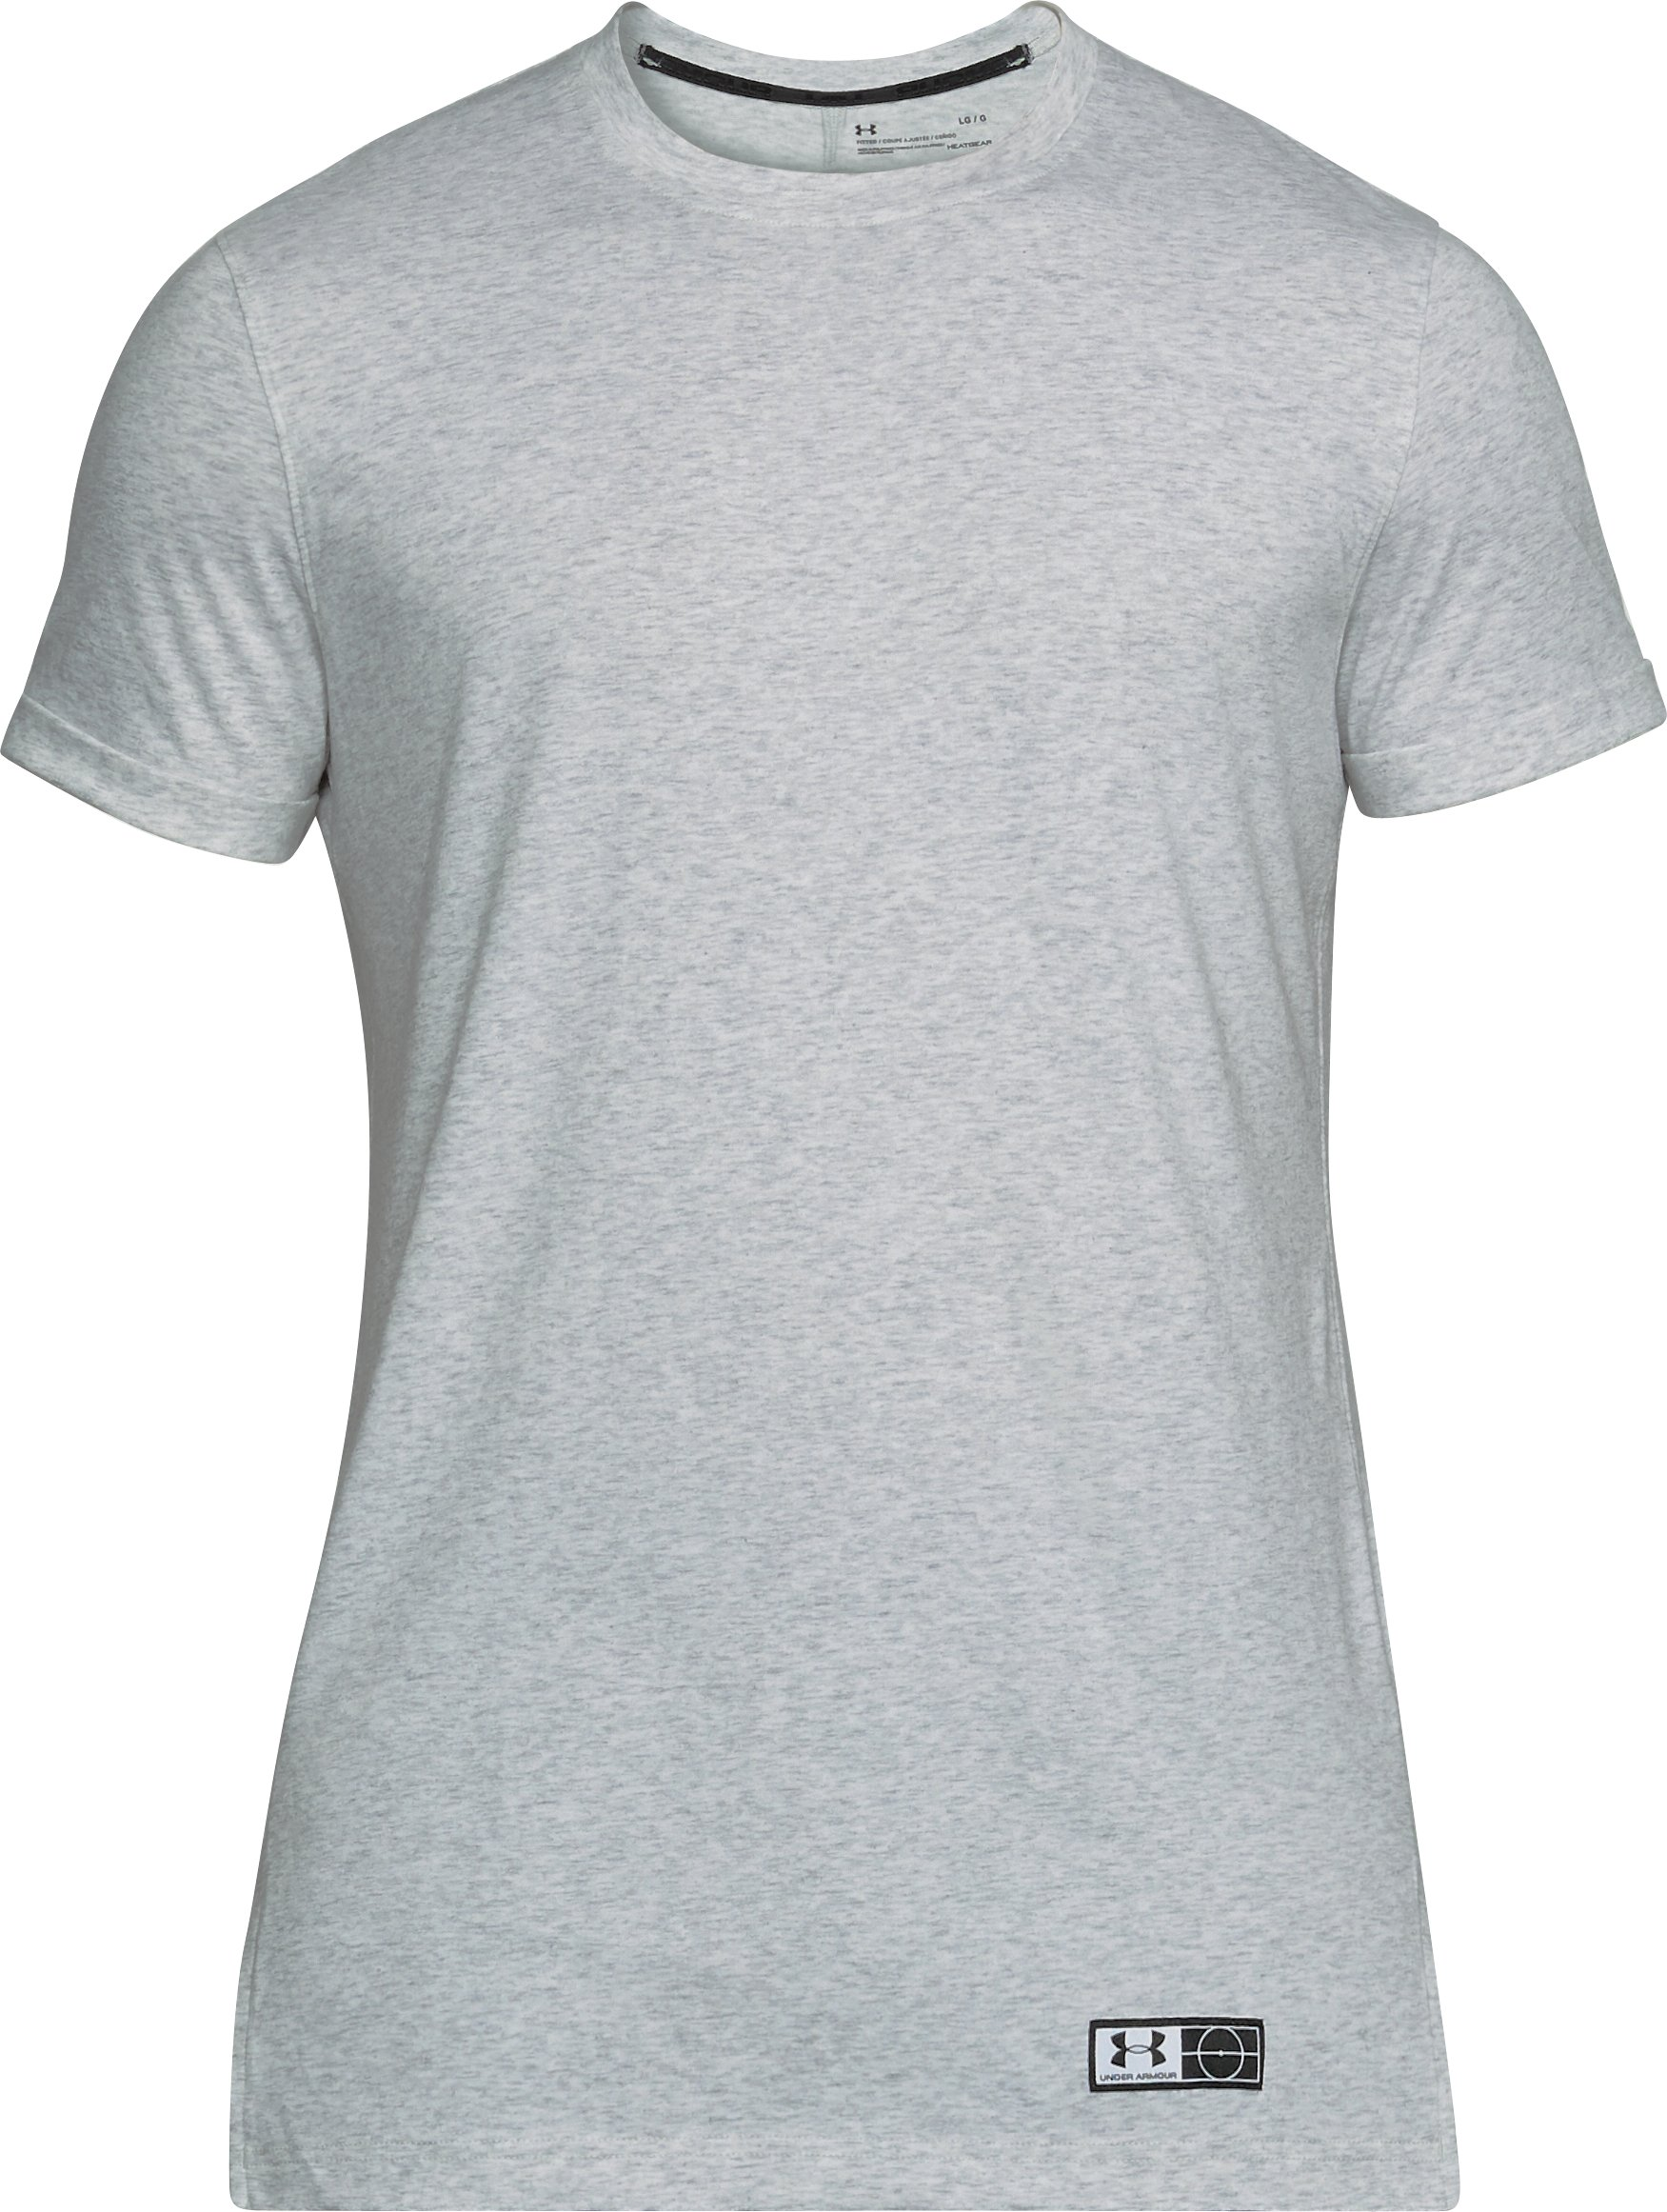 Men's UA Accelerate Off-Pitch T-Shirt, ELEMENTAL MEDIUM HEATHER, undefined